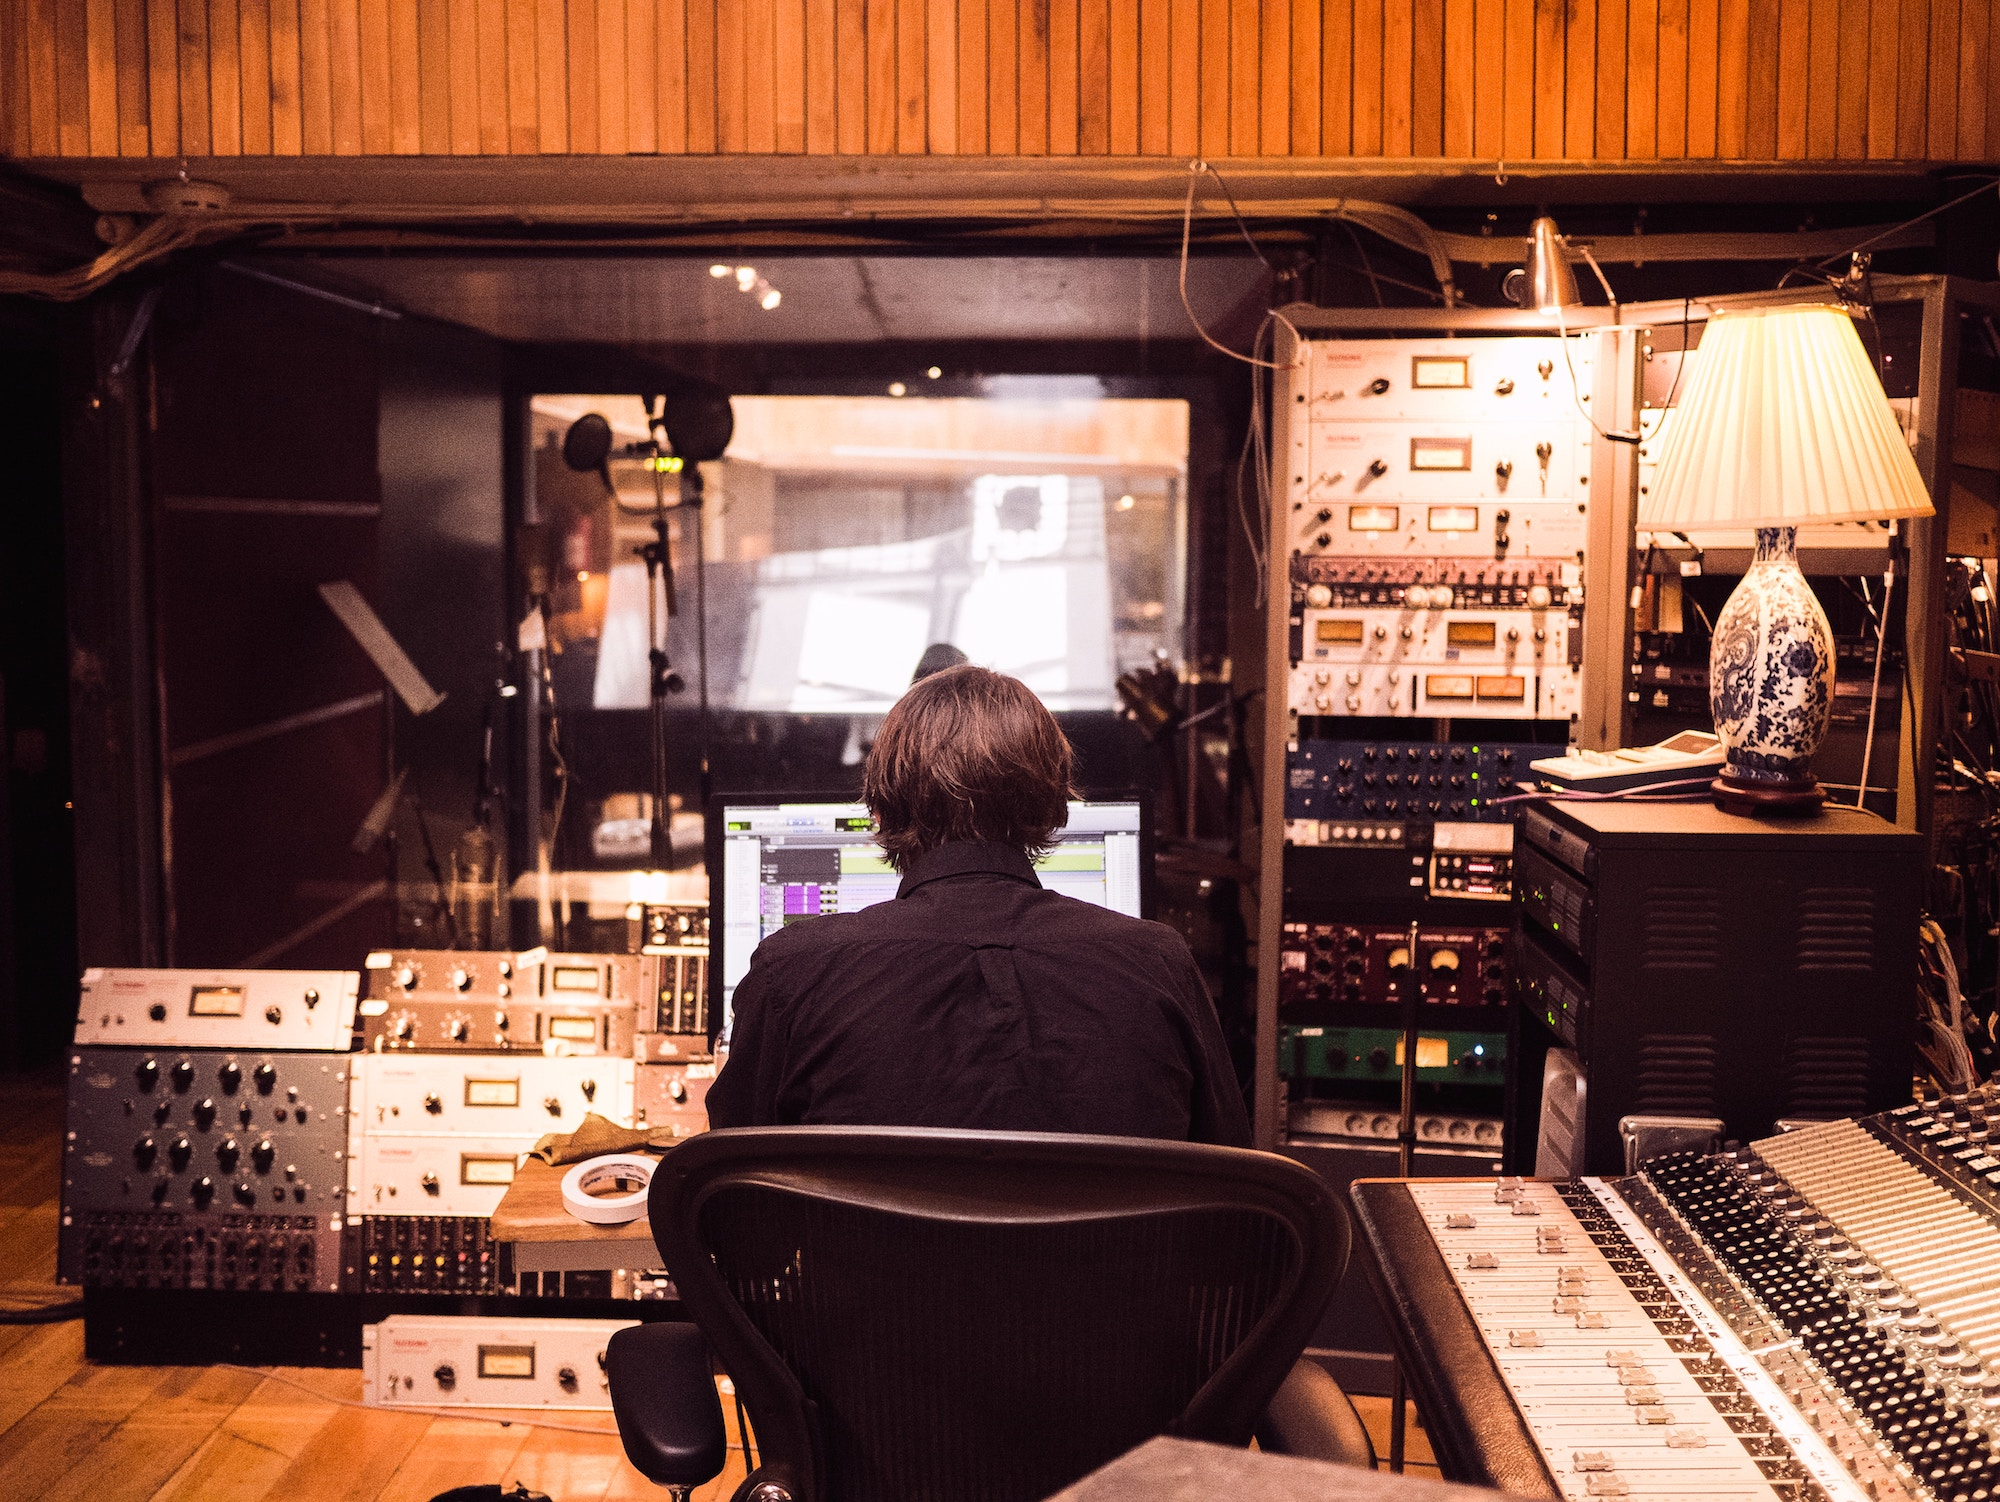 A musician working at a soundboard in a recording studio.